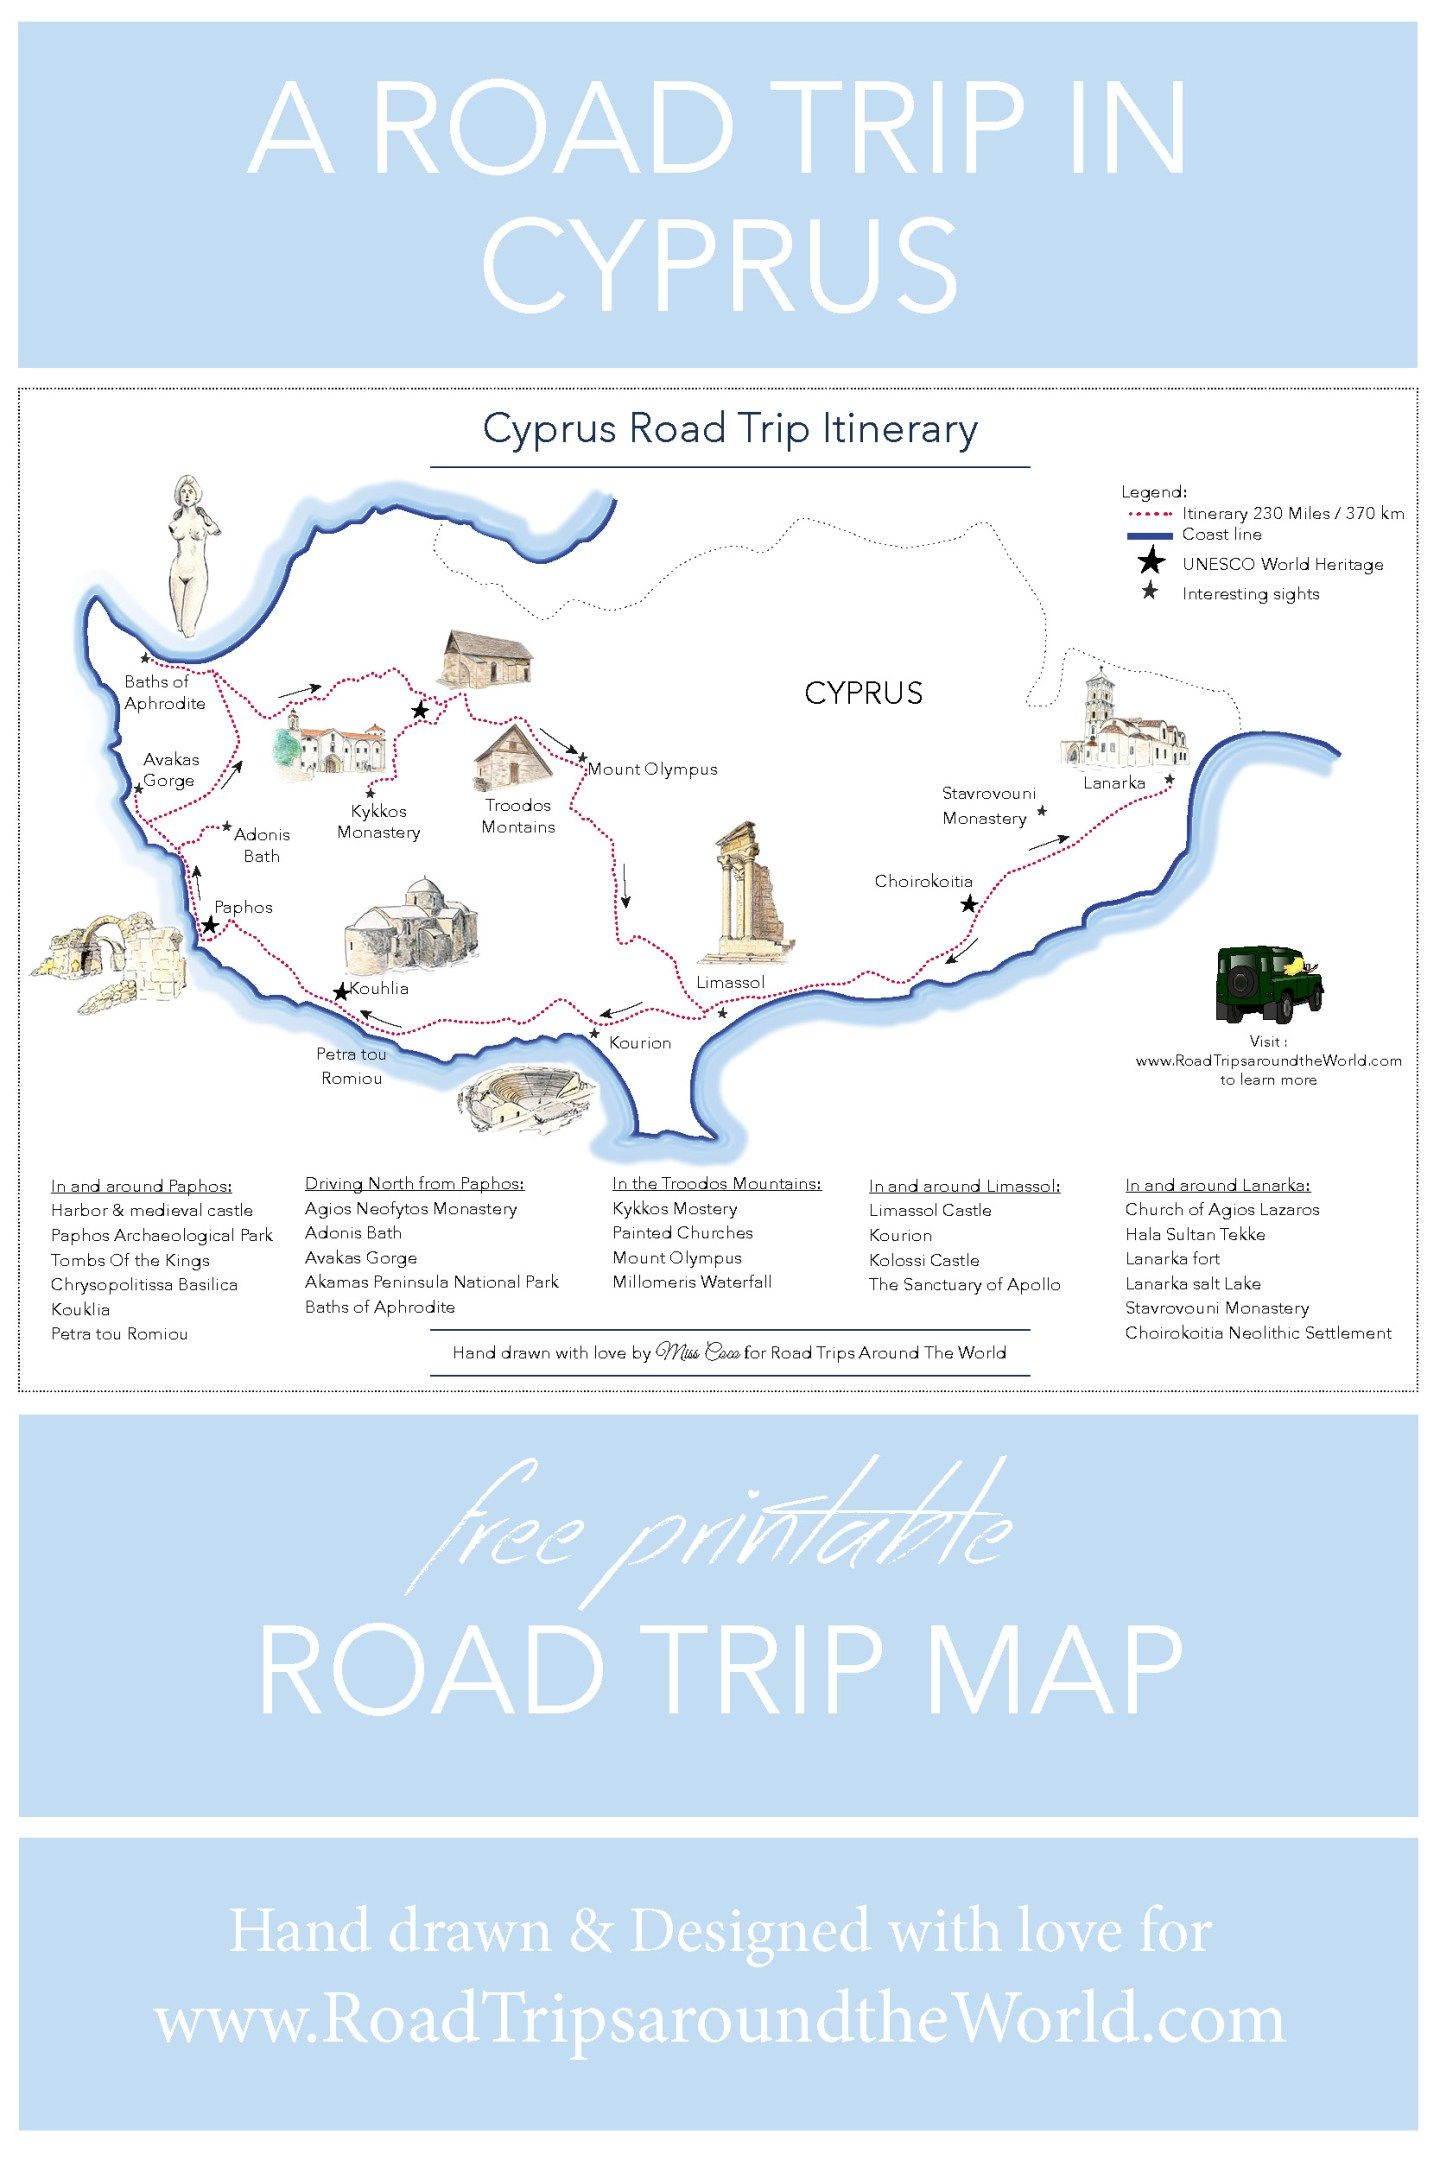 A road trip in cyprus free printable map road trips around the a road trip in cyprus free printable map road trips around the world gumiabroncs Choice Image